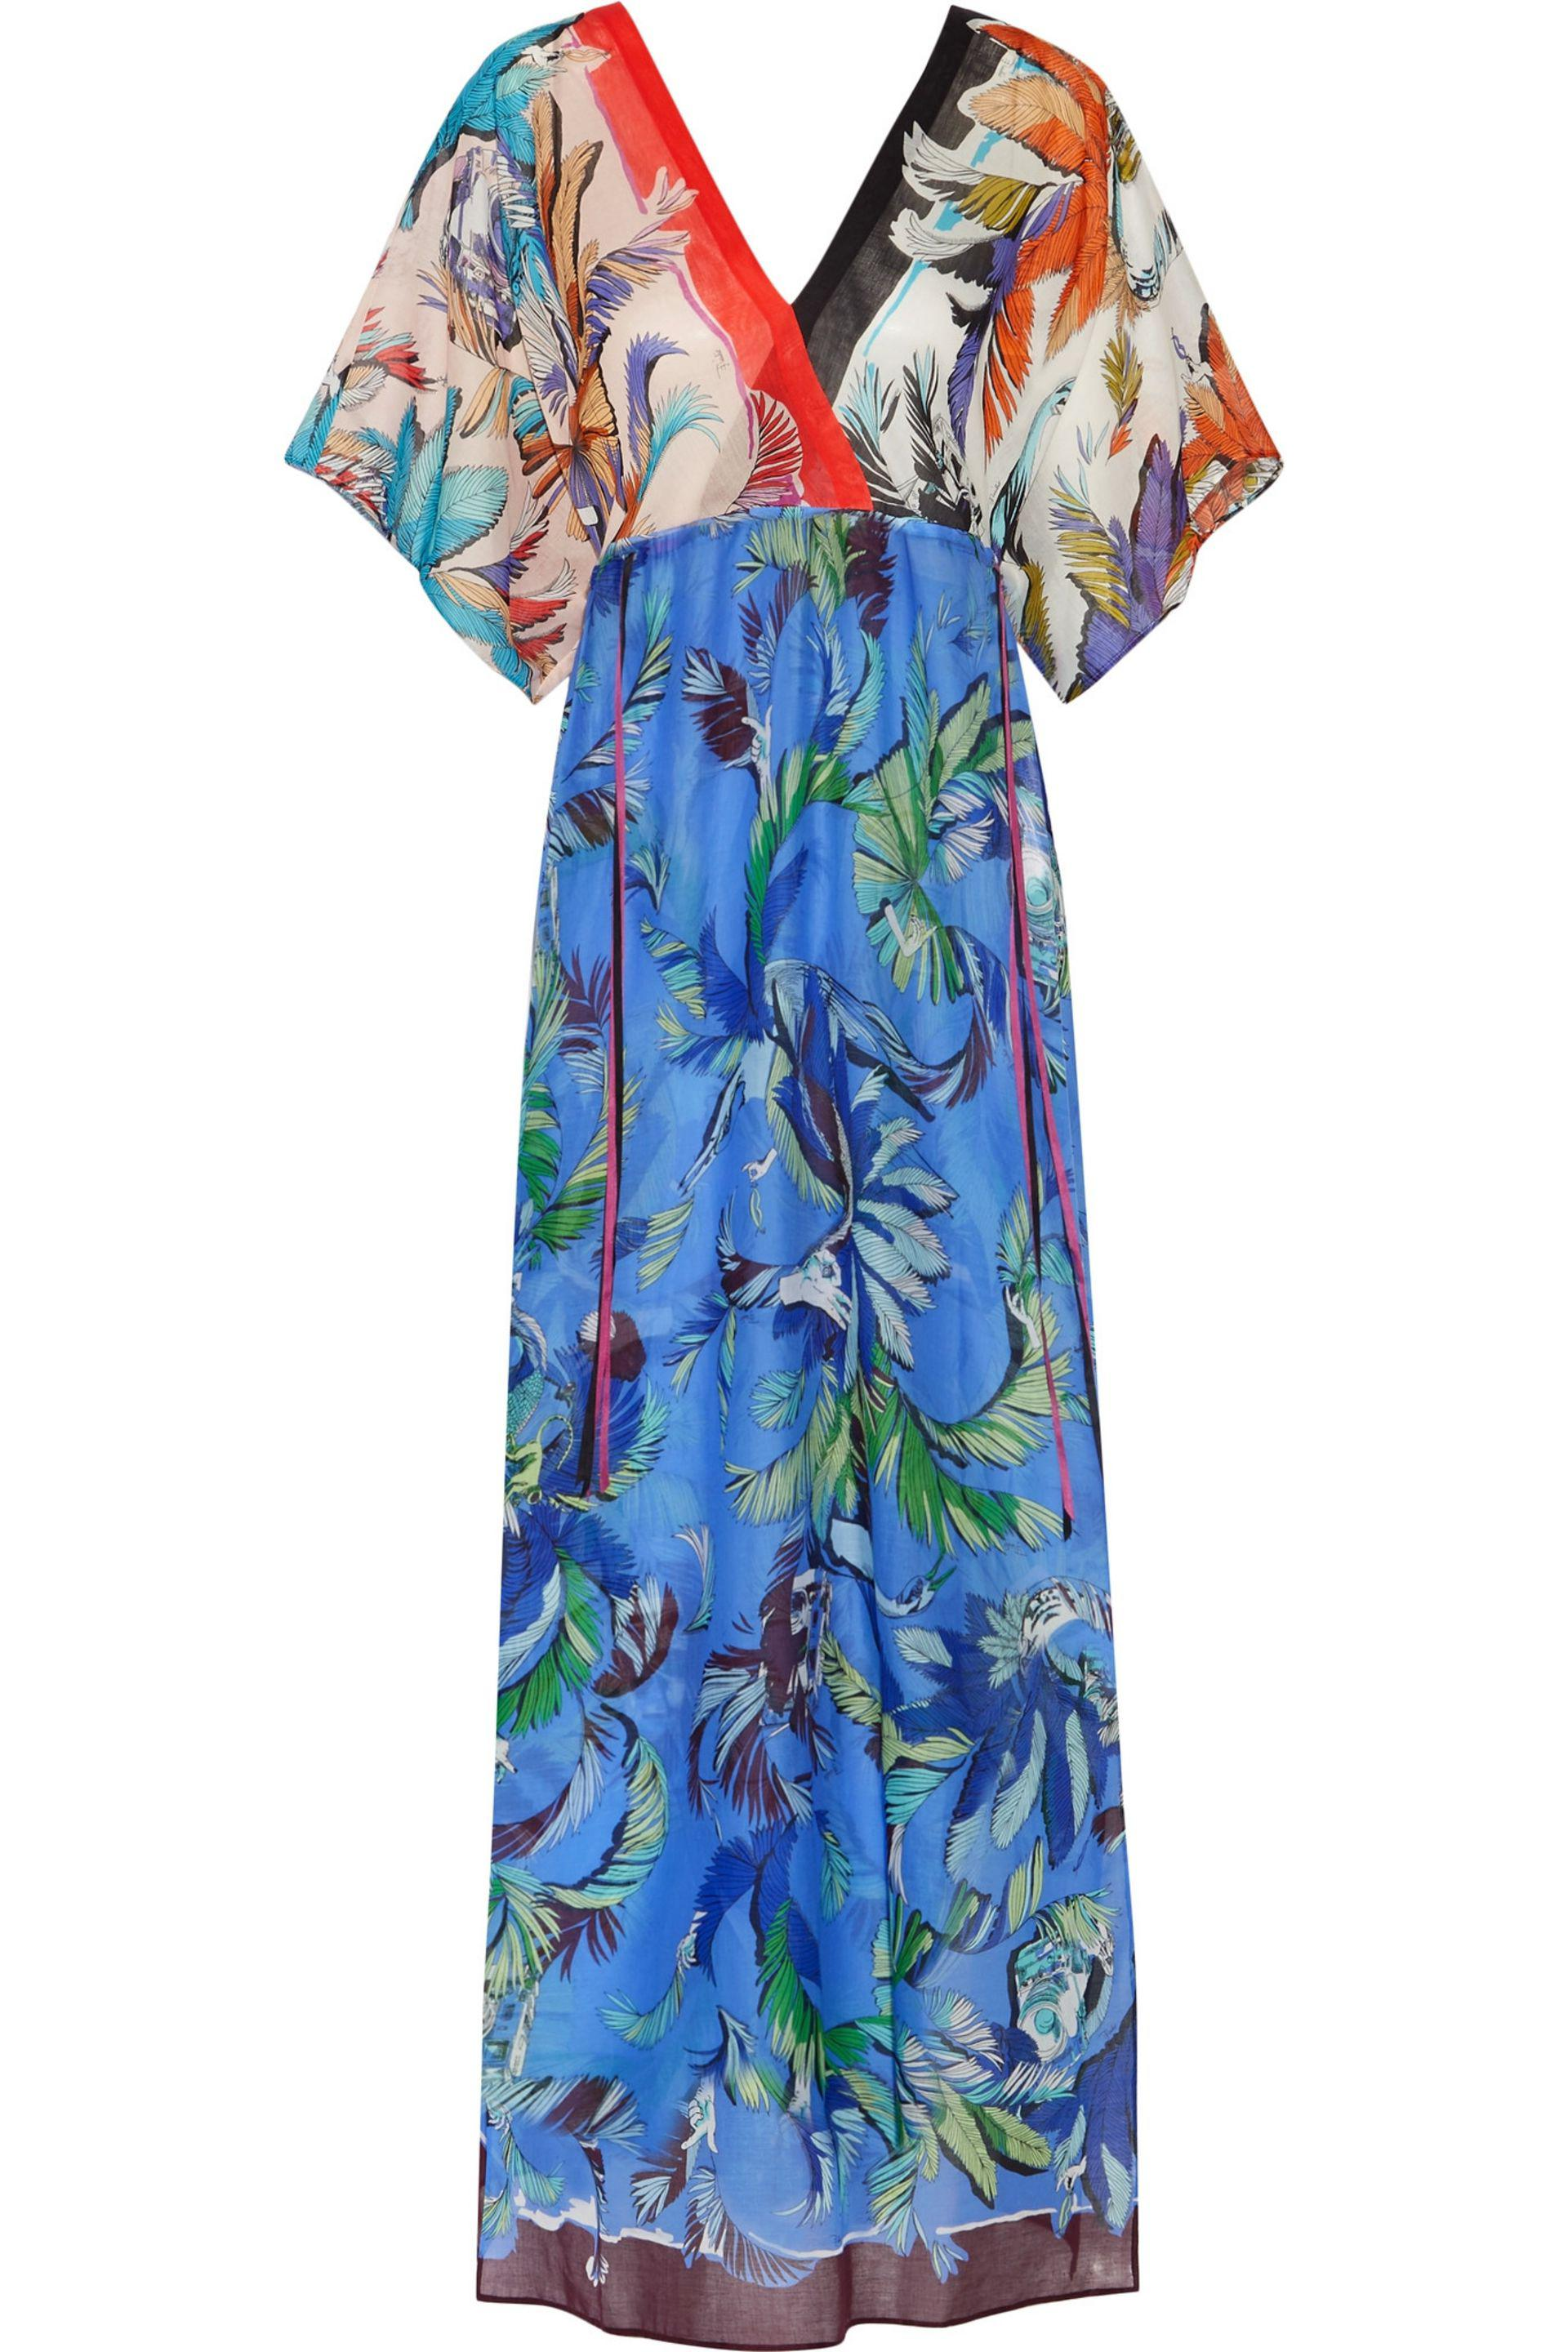 Emilio Pucci Woman Printed Cotton And Silk-blend Top Sky Blue Size 42 Emilio Pucci Low Shipping Fee Online Fashionable For Sale Outlet View CSIha